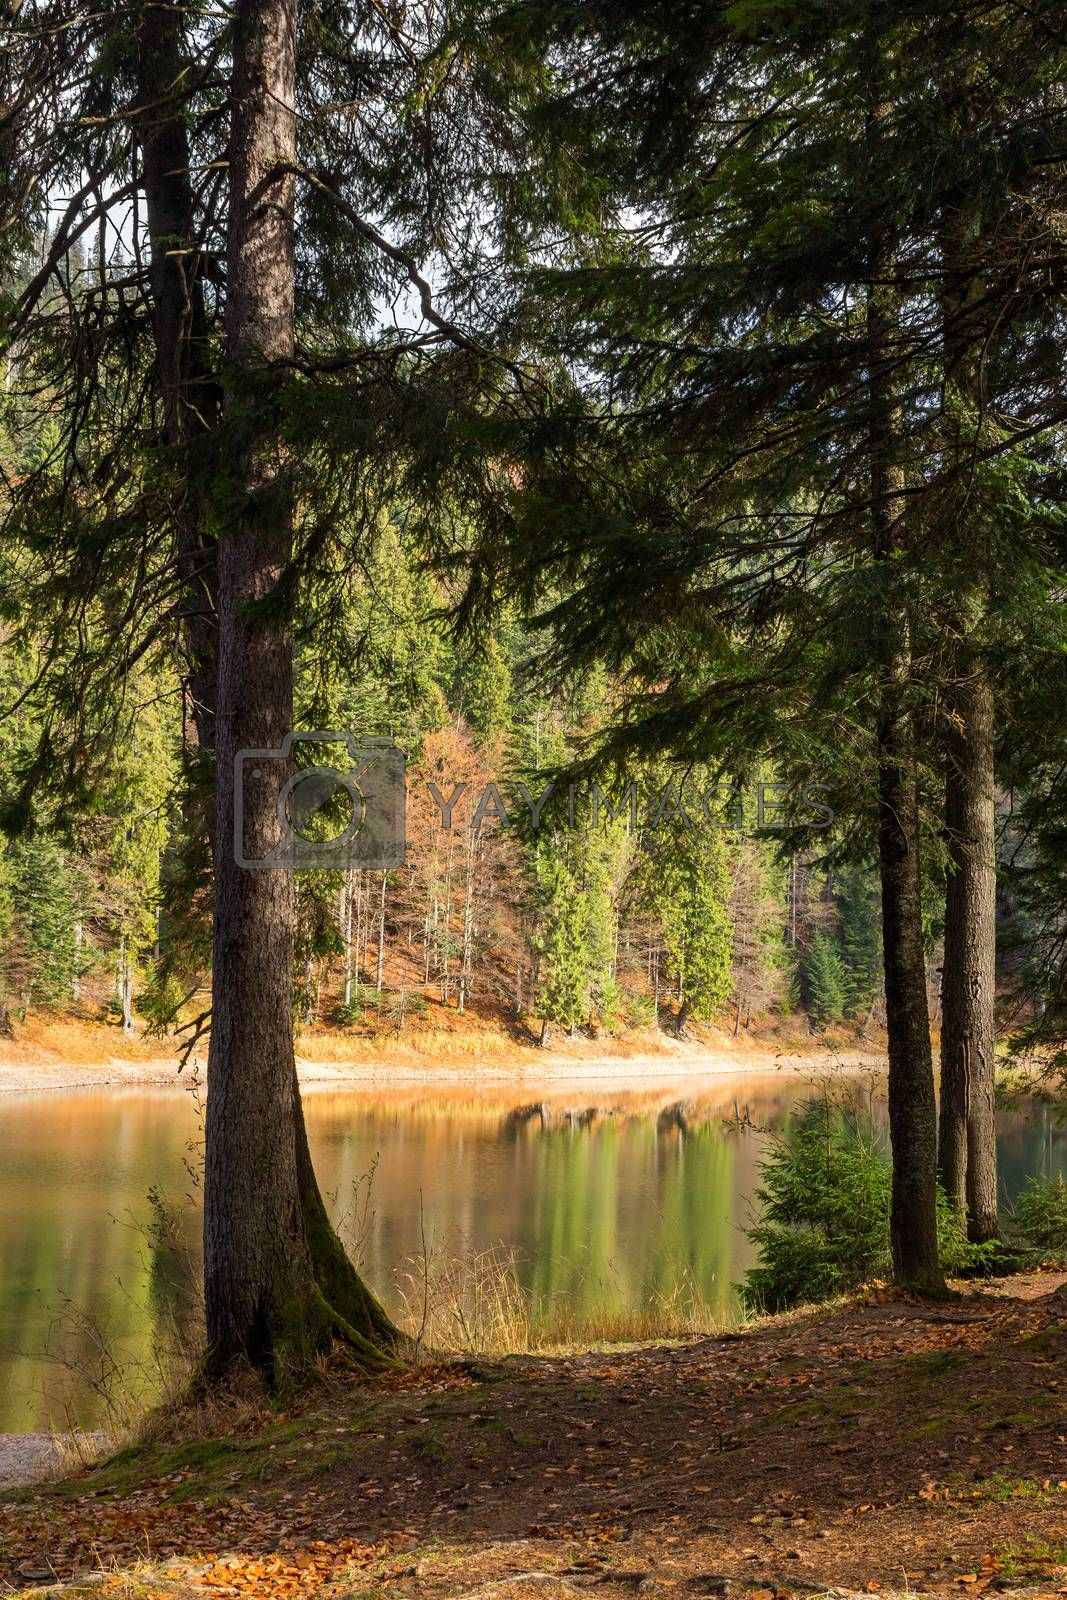 pine forest and lake near the mountain early in the morning by Pellinni